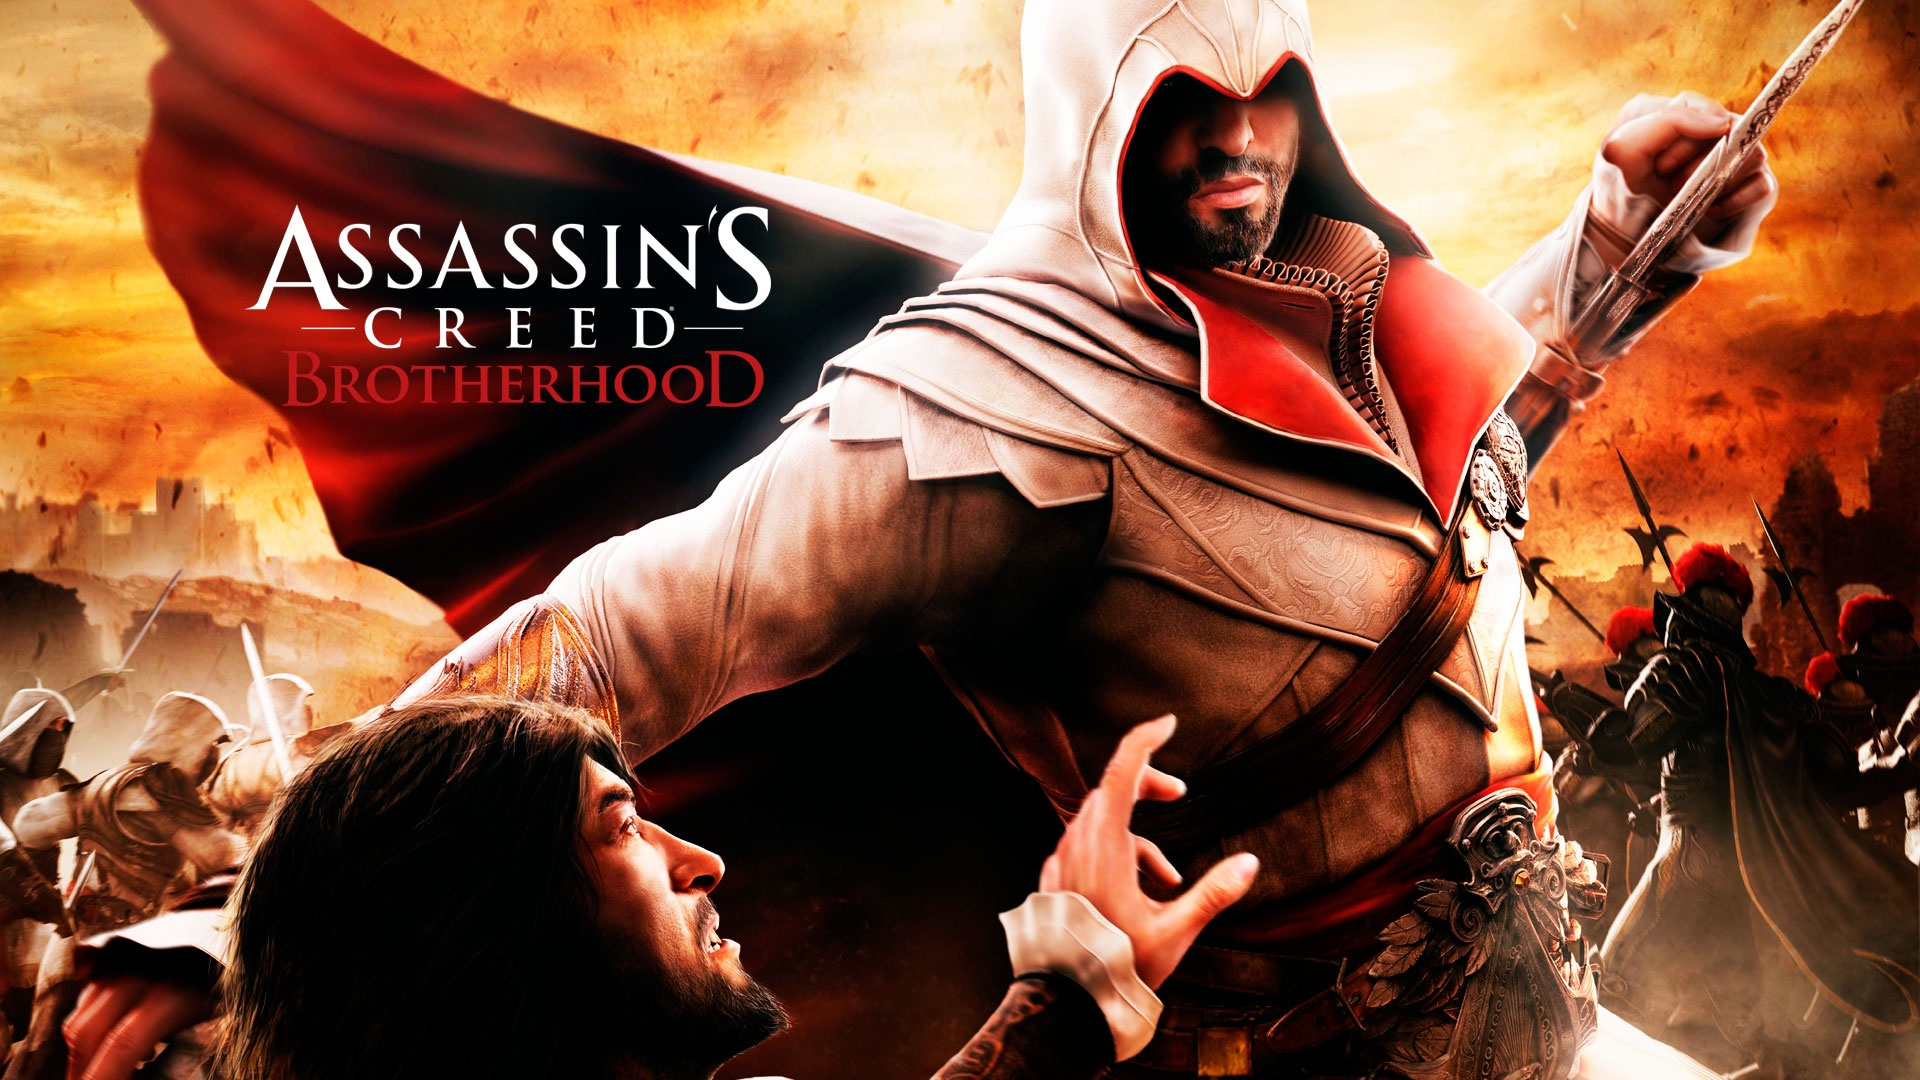 assassins creed brotherhood free download for pc windows 7